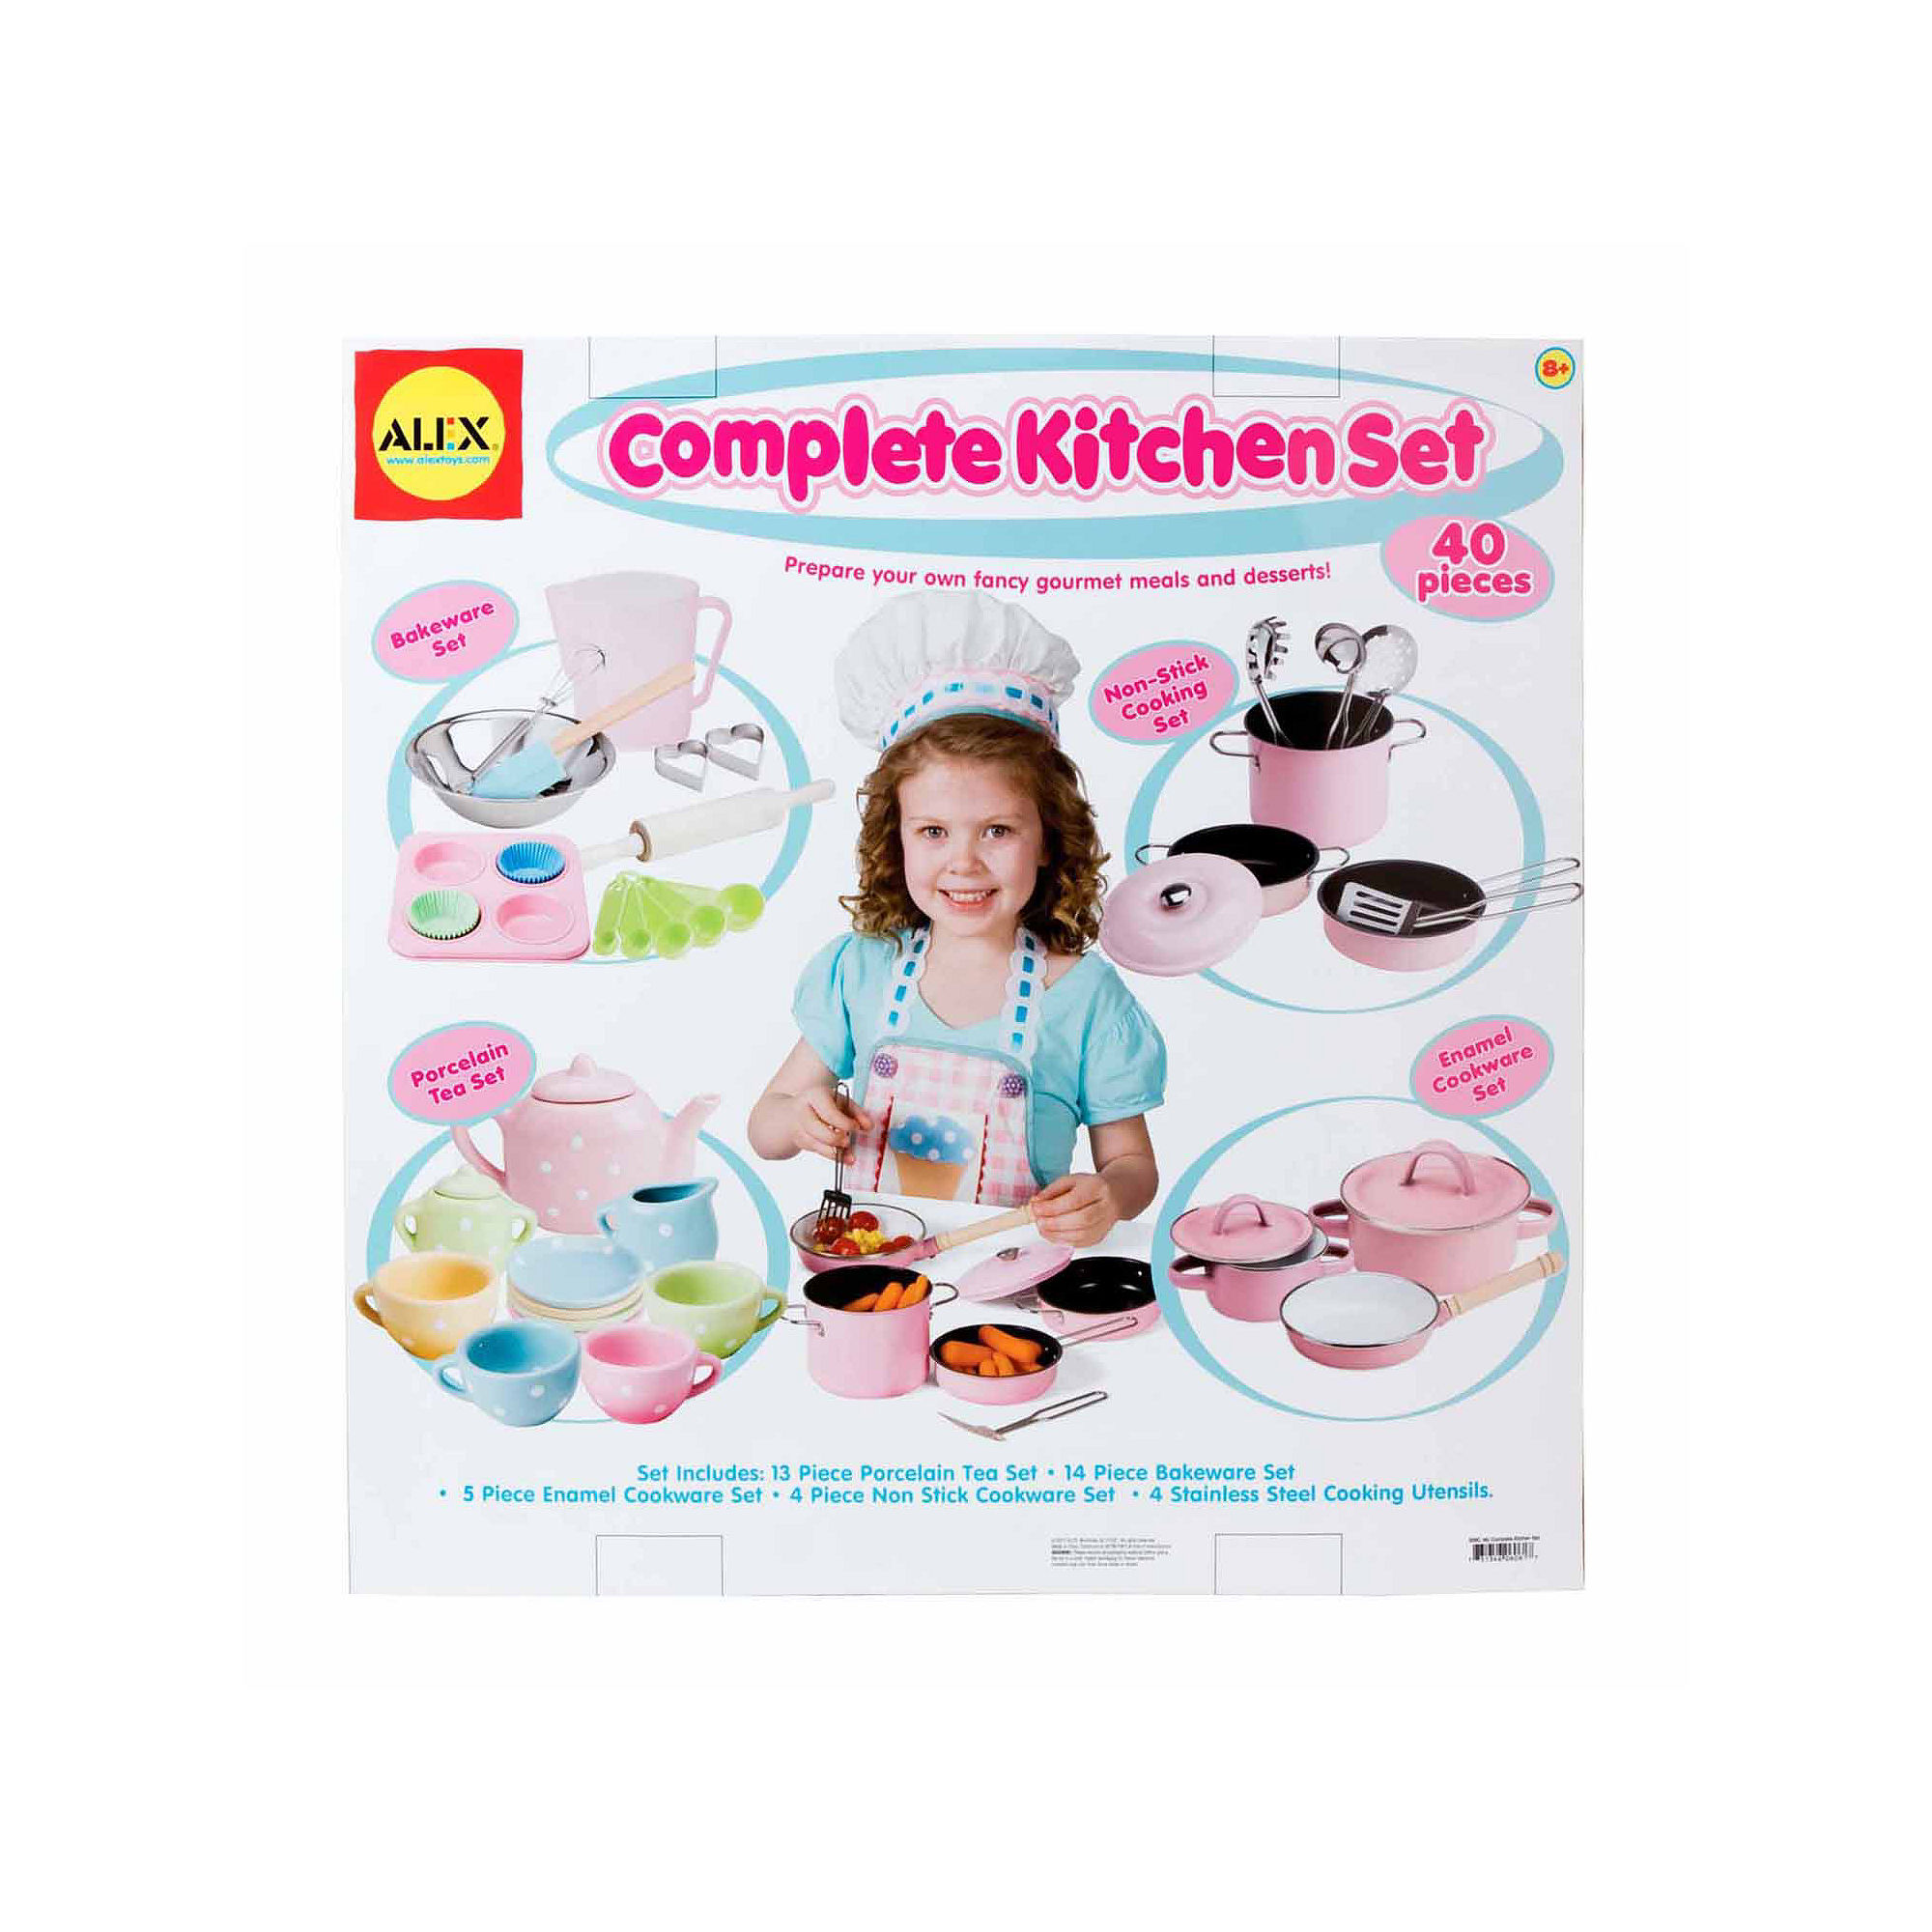 731346060617 upc complete kitchen set upc lookup for Kitchen set name